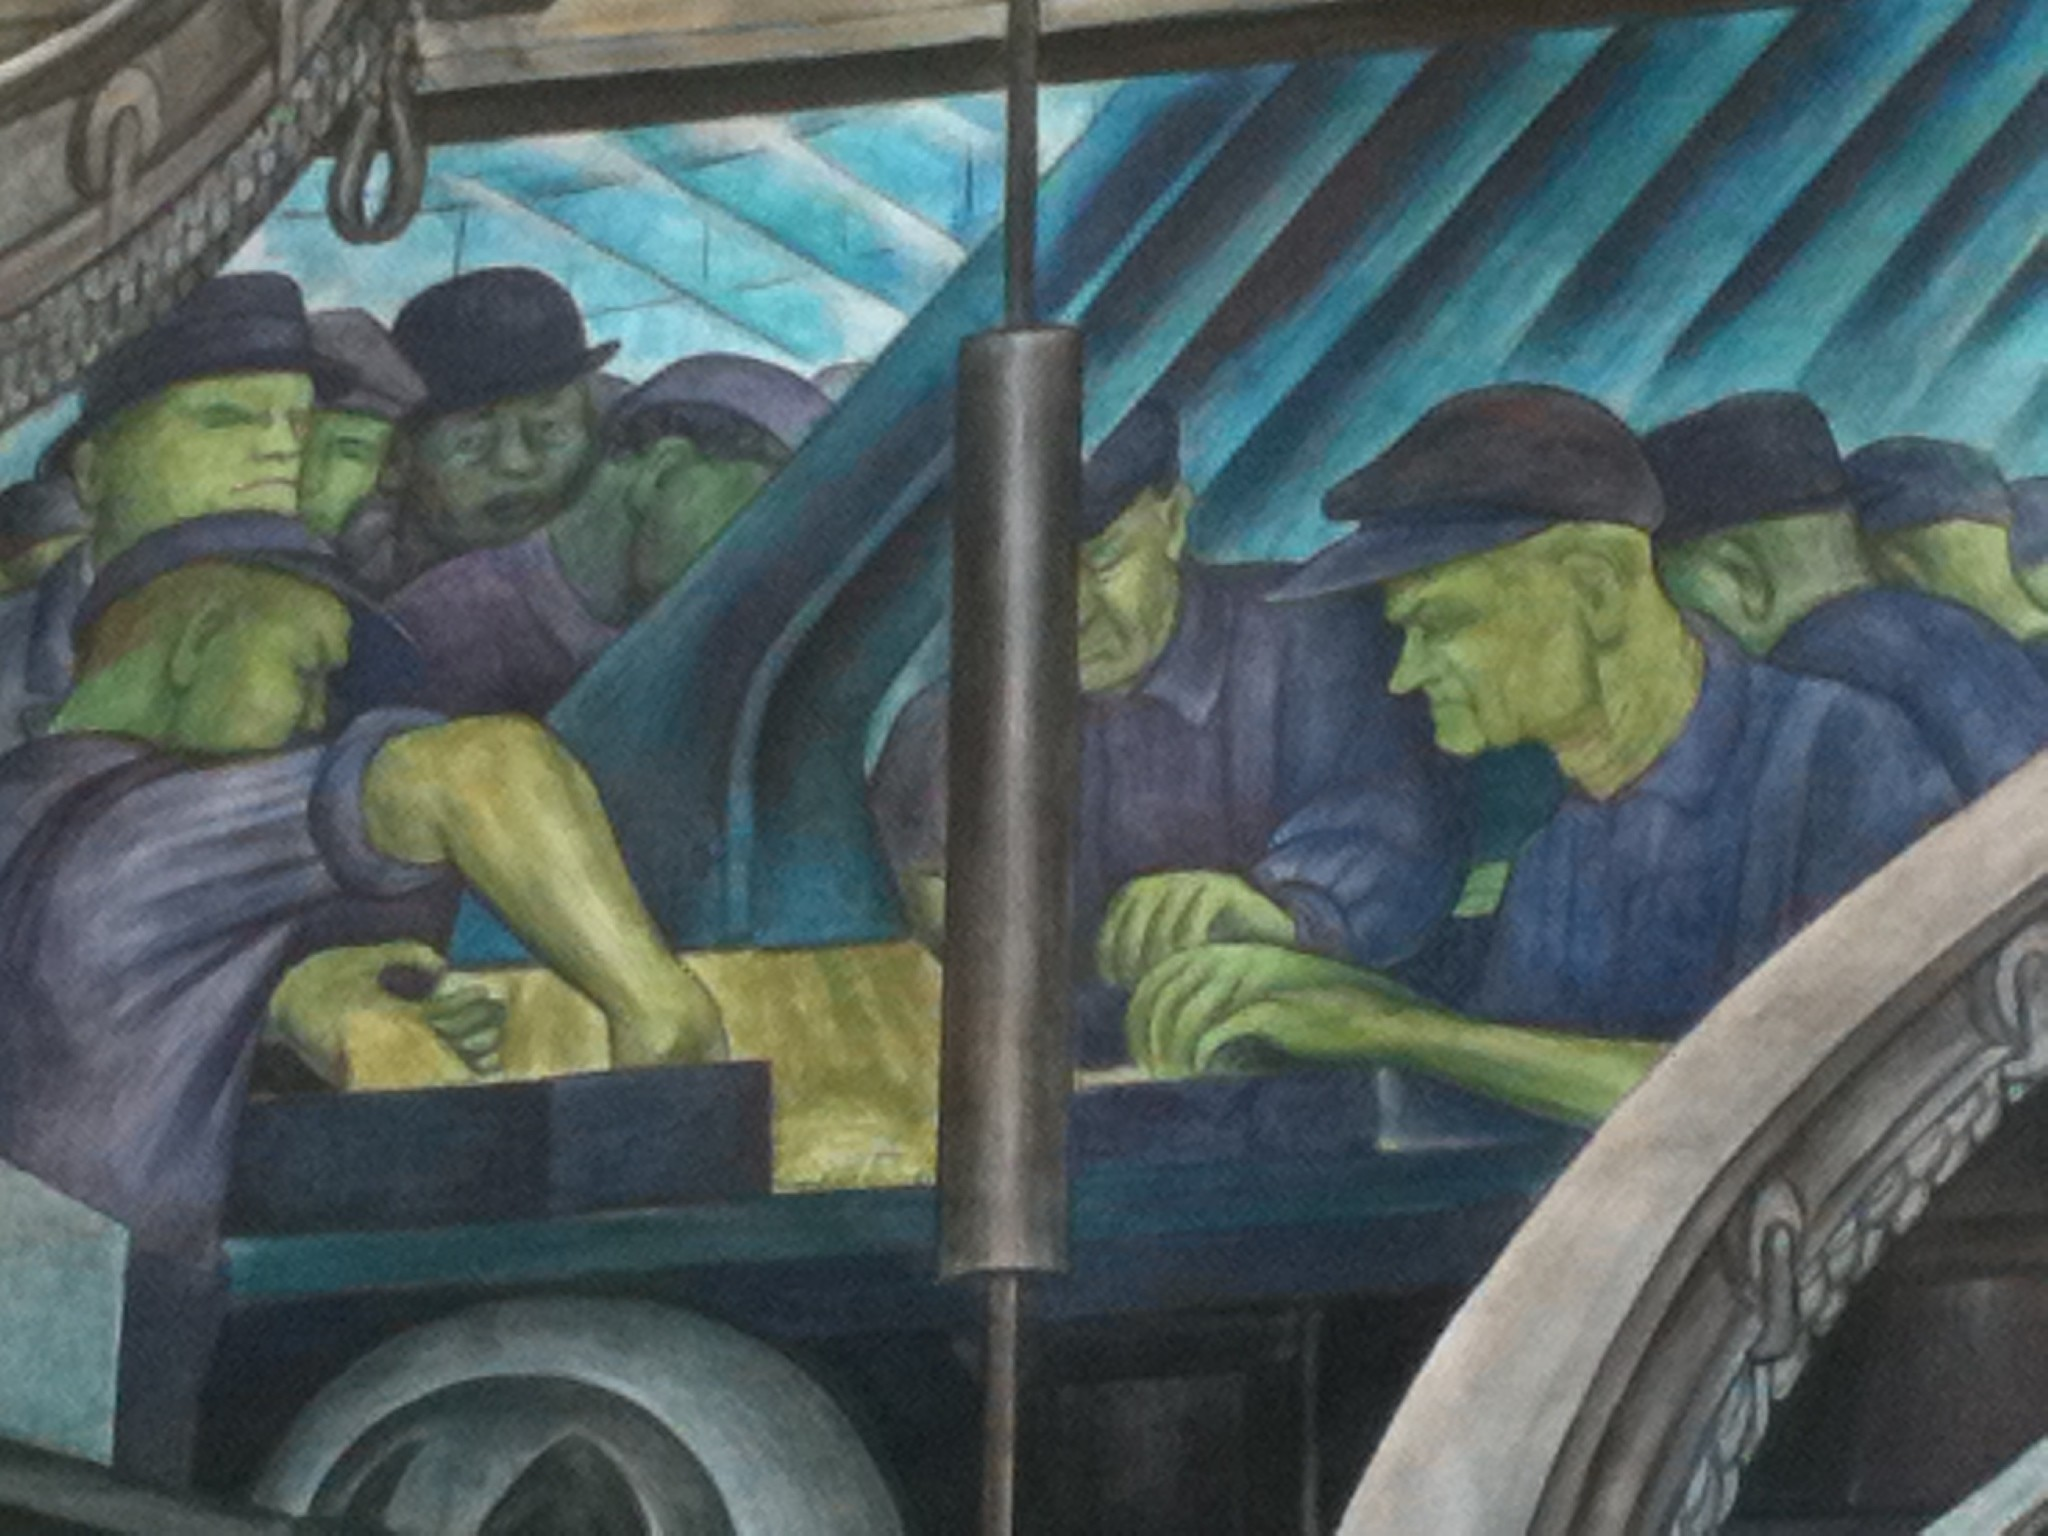 Res: 2048x1536, The Detroit Industry Murals are a series of frescoes by the Mexican artist Diego  Rivera, consisting of twenty-seven panels depicting industry at the Ford ...